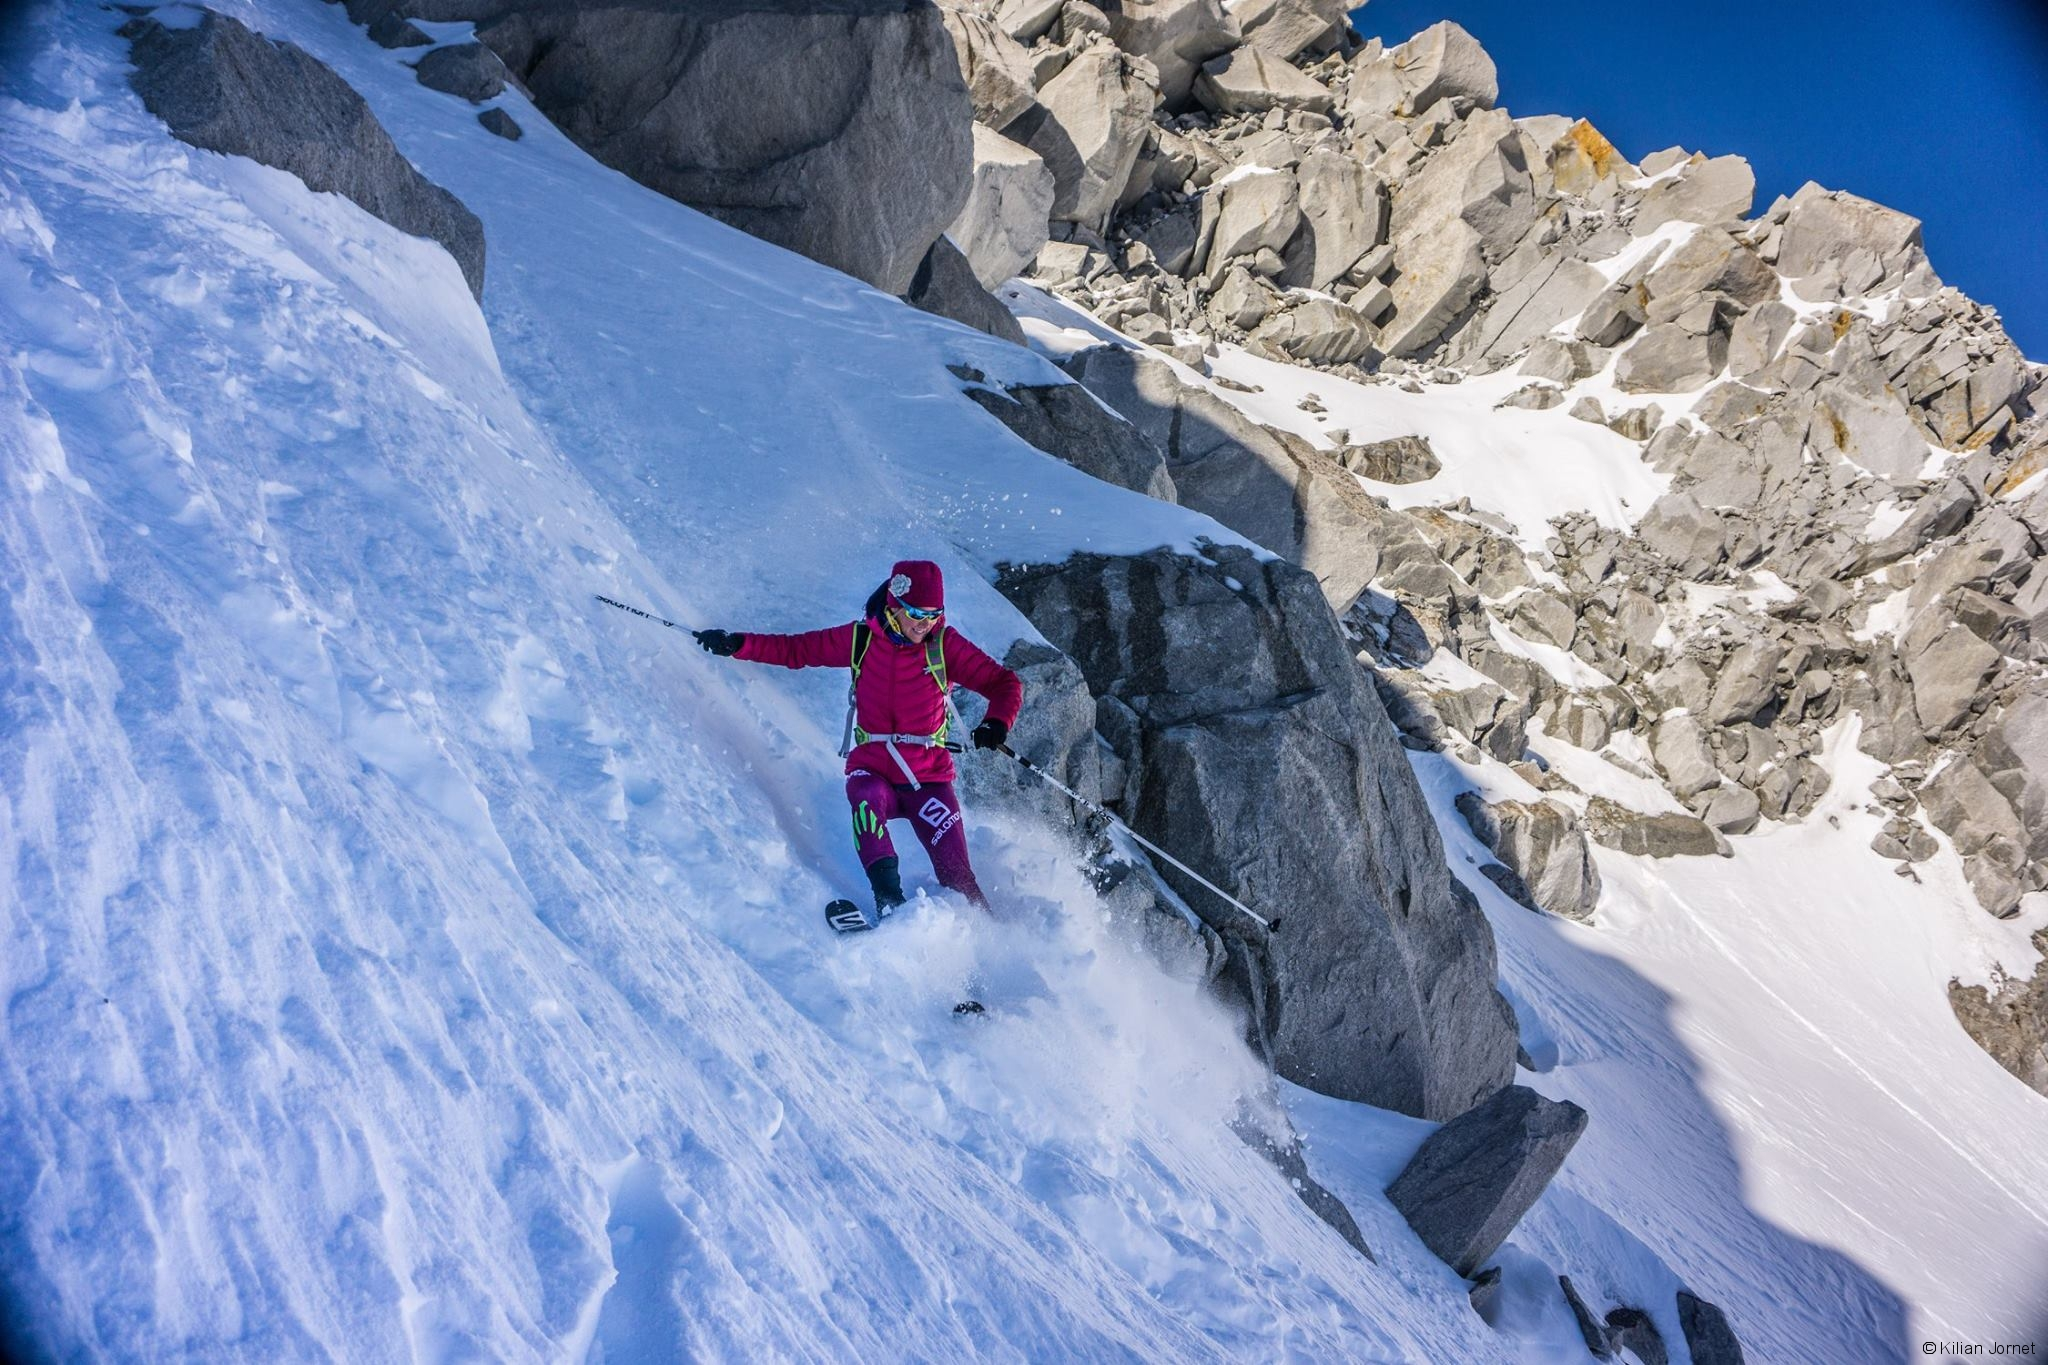 Emelie and Alpinism